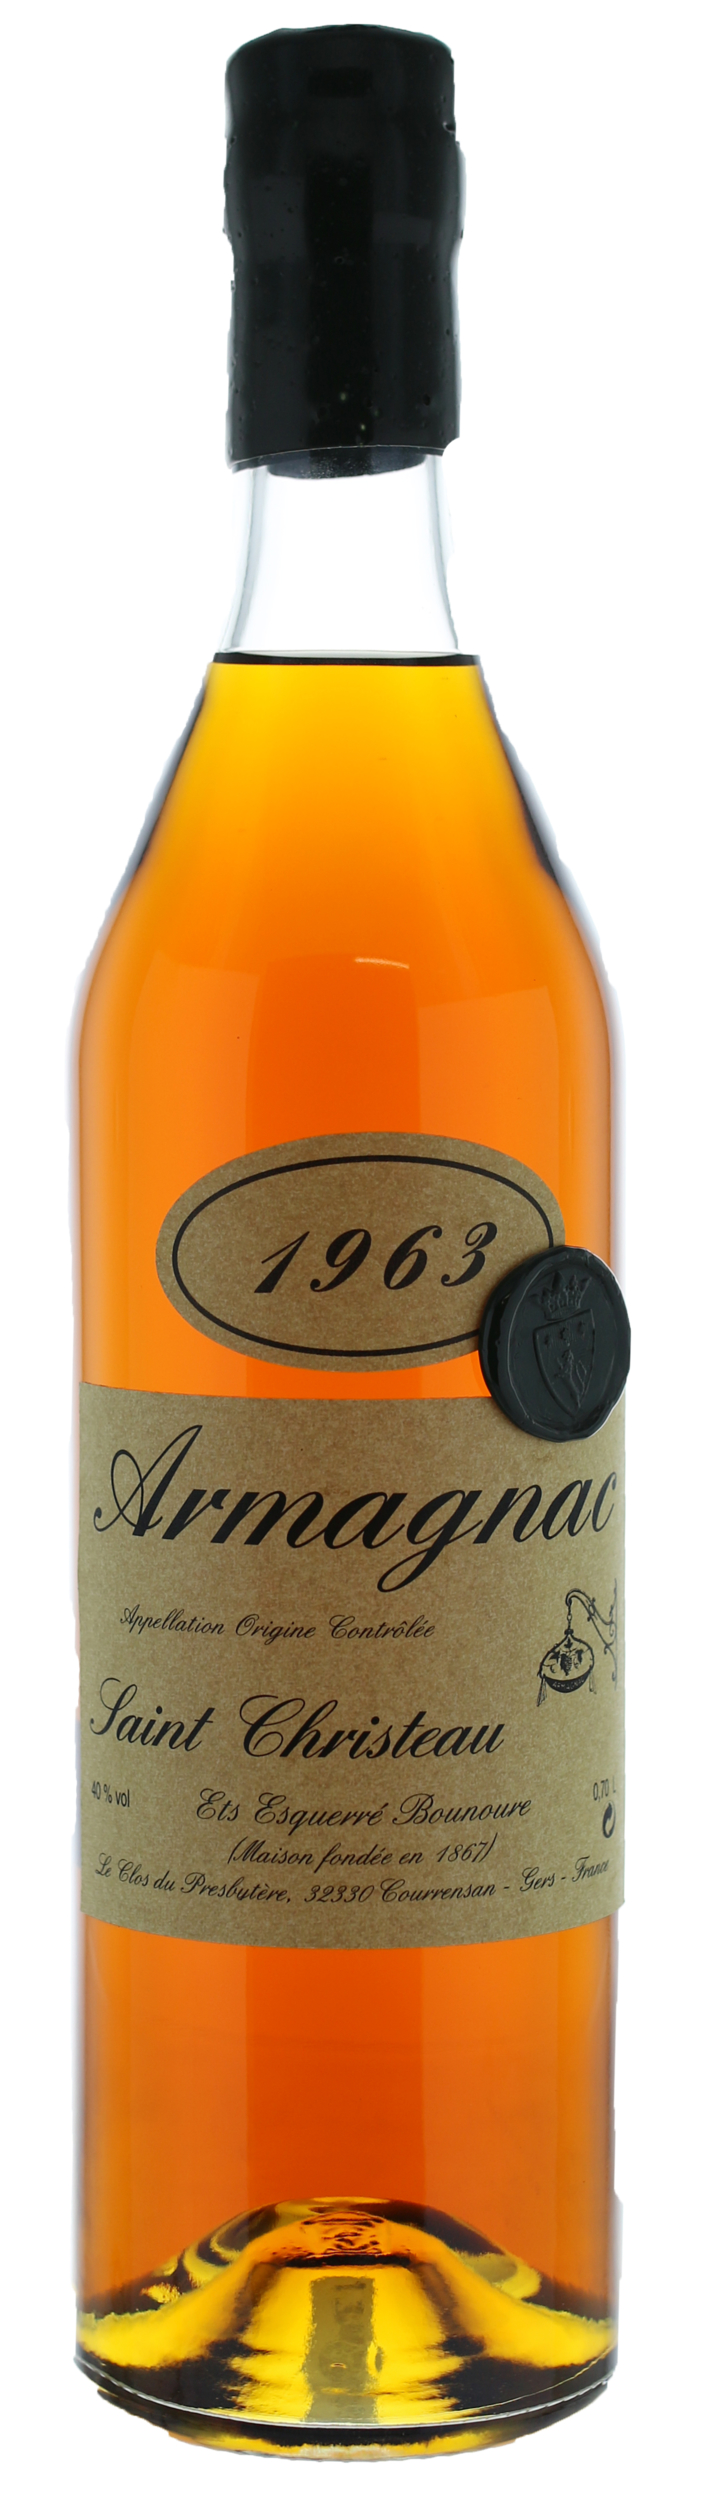 ARMAGNAC - 1963 - Saint-Christeau - 40° - G. Miclo